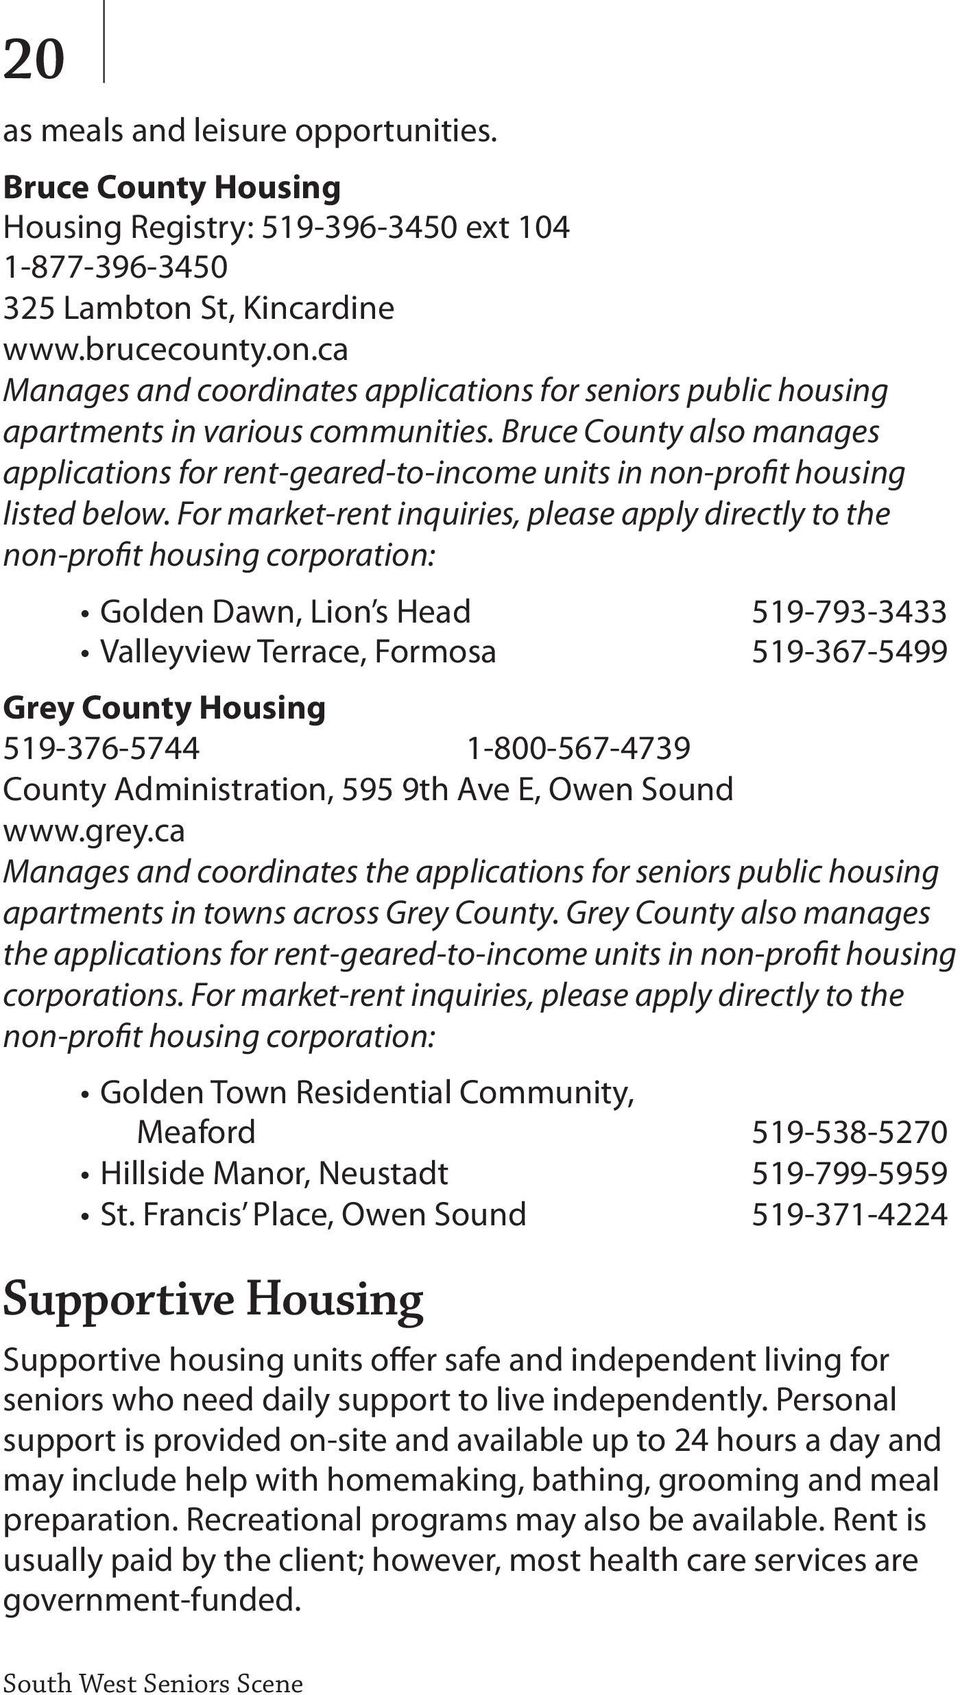 Bruce County also manages applications for rent-geared-to-income units in non-profit housing listed below.